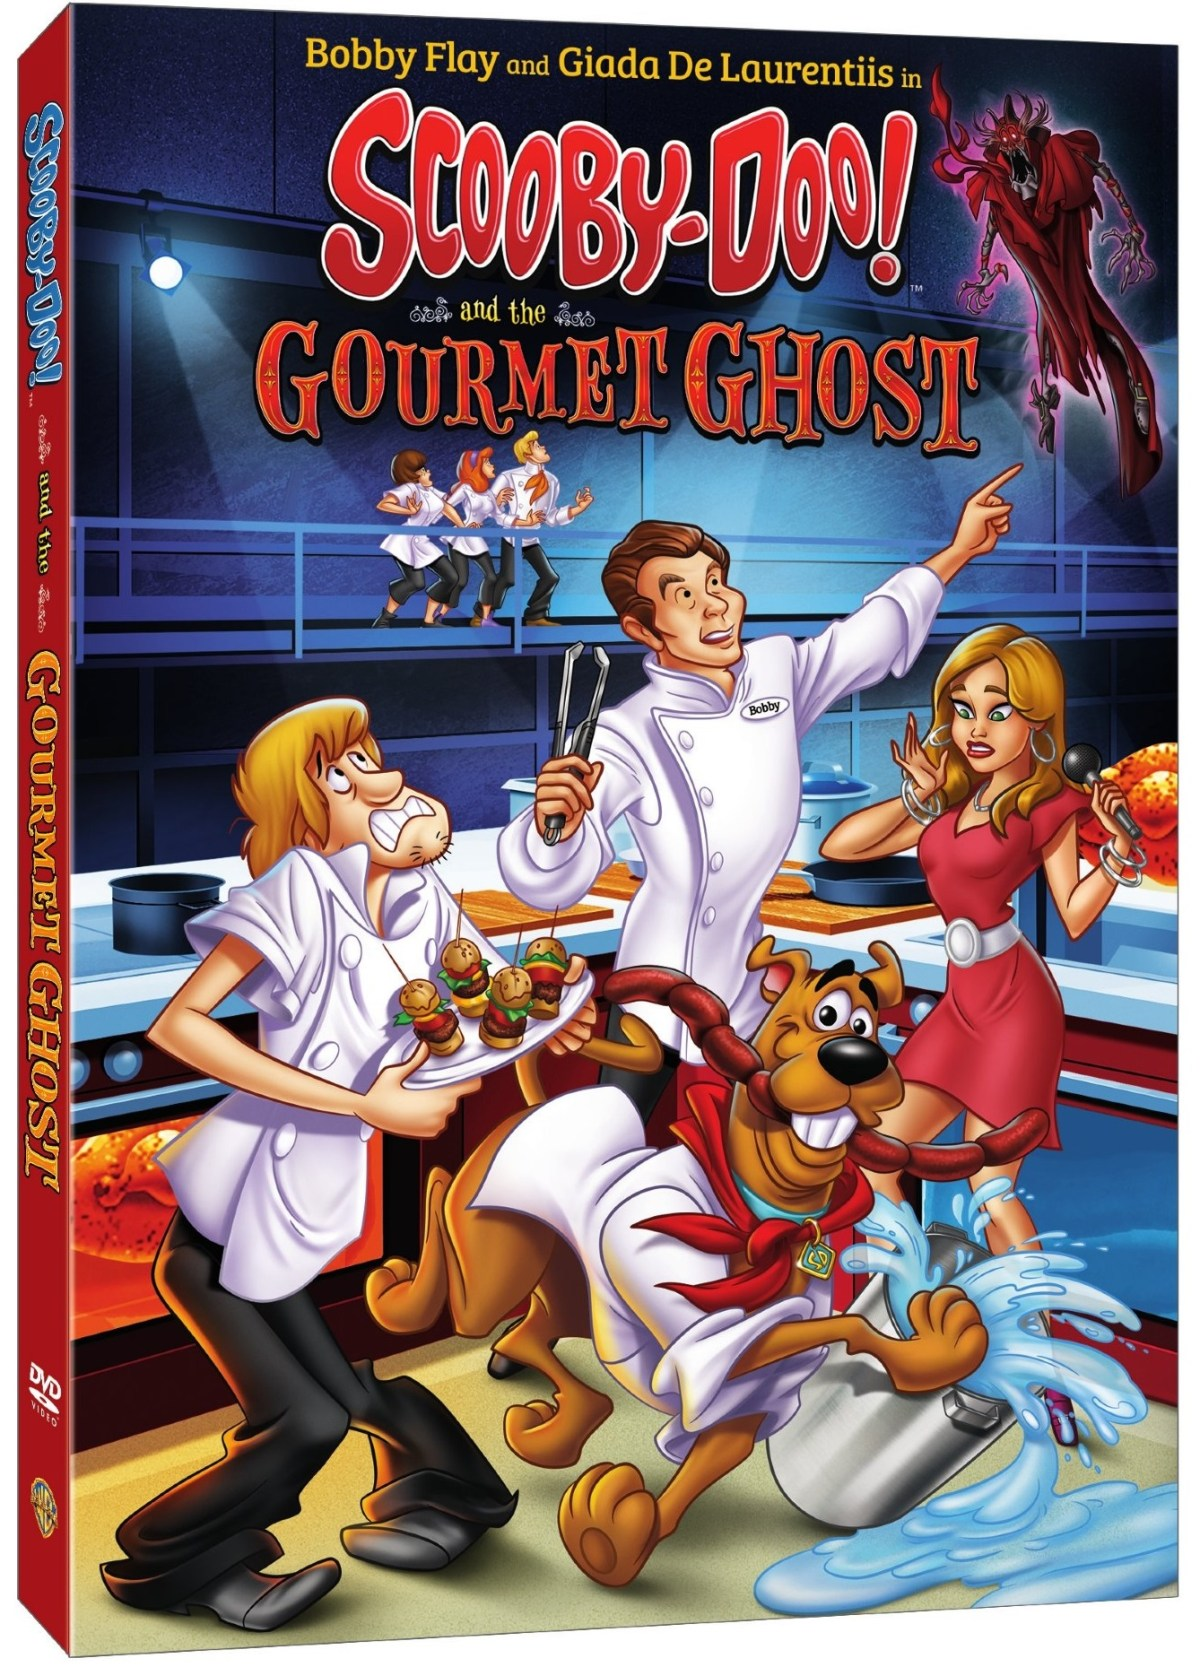 Trailer, Artwork & Release Details For 'Scooby-Doo! And The Gourmet Ghost'; Arrives On Digital August 28 & On DVD September 11, 2018 From Warner Bros 14